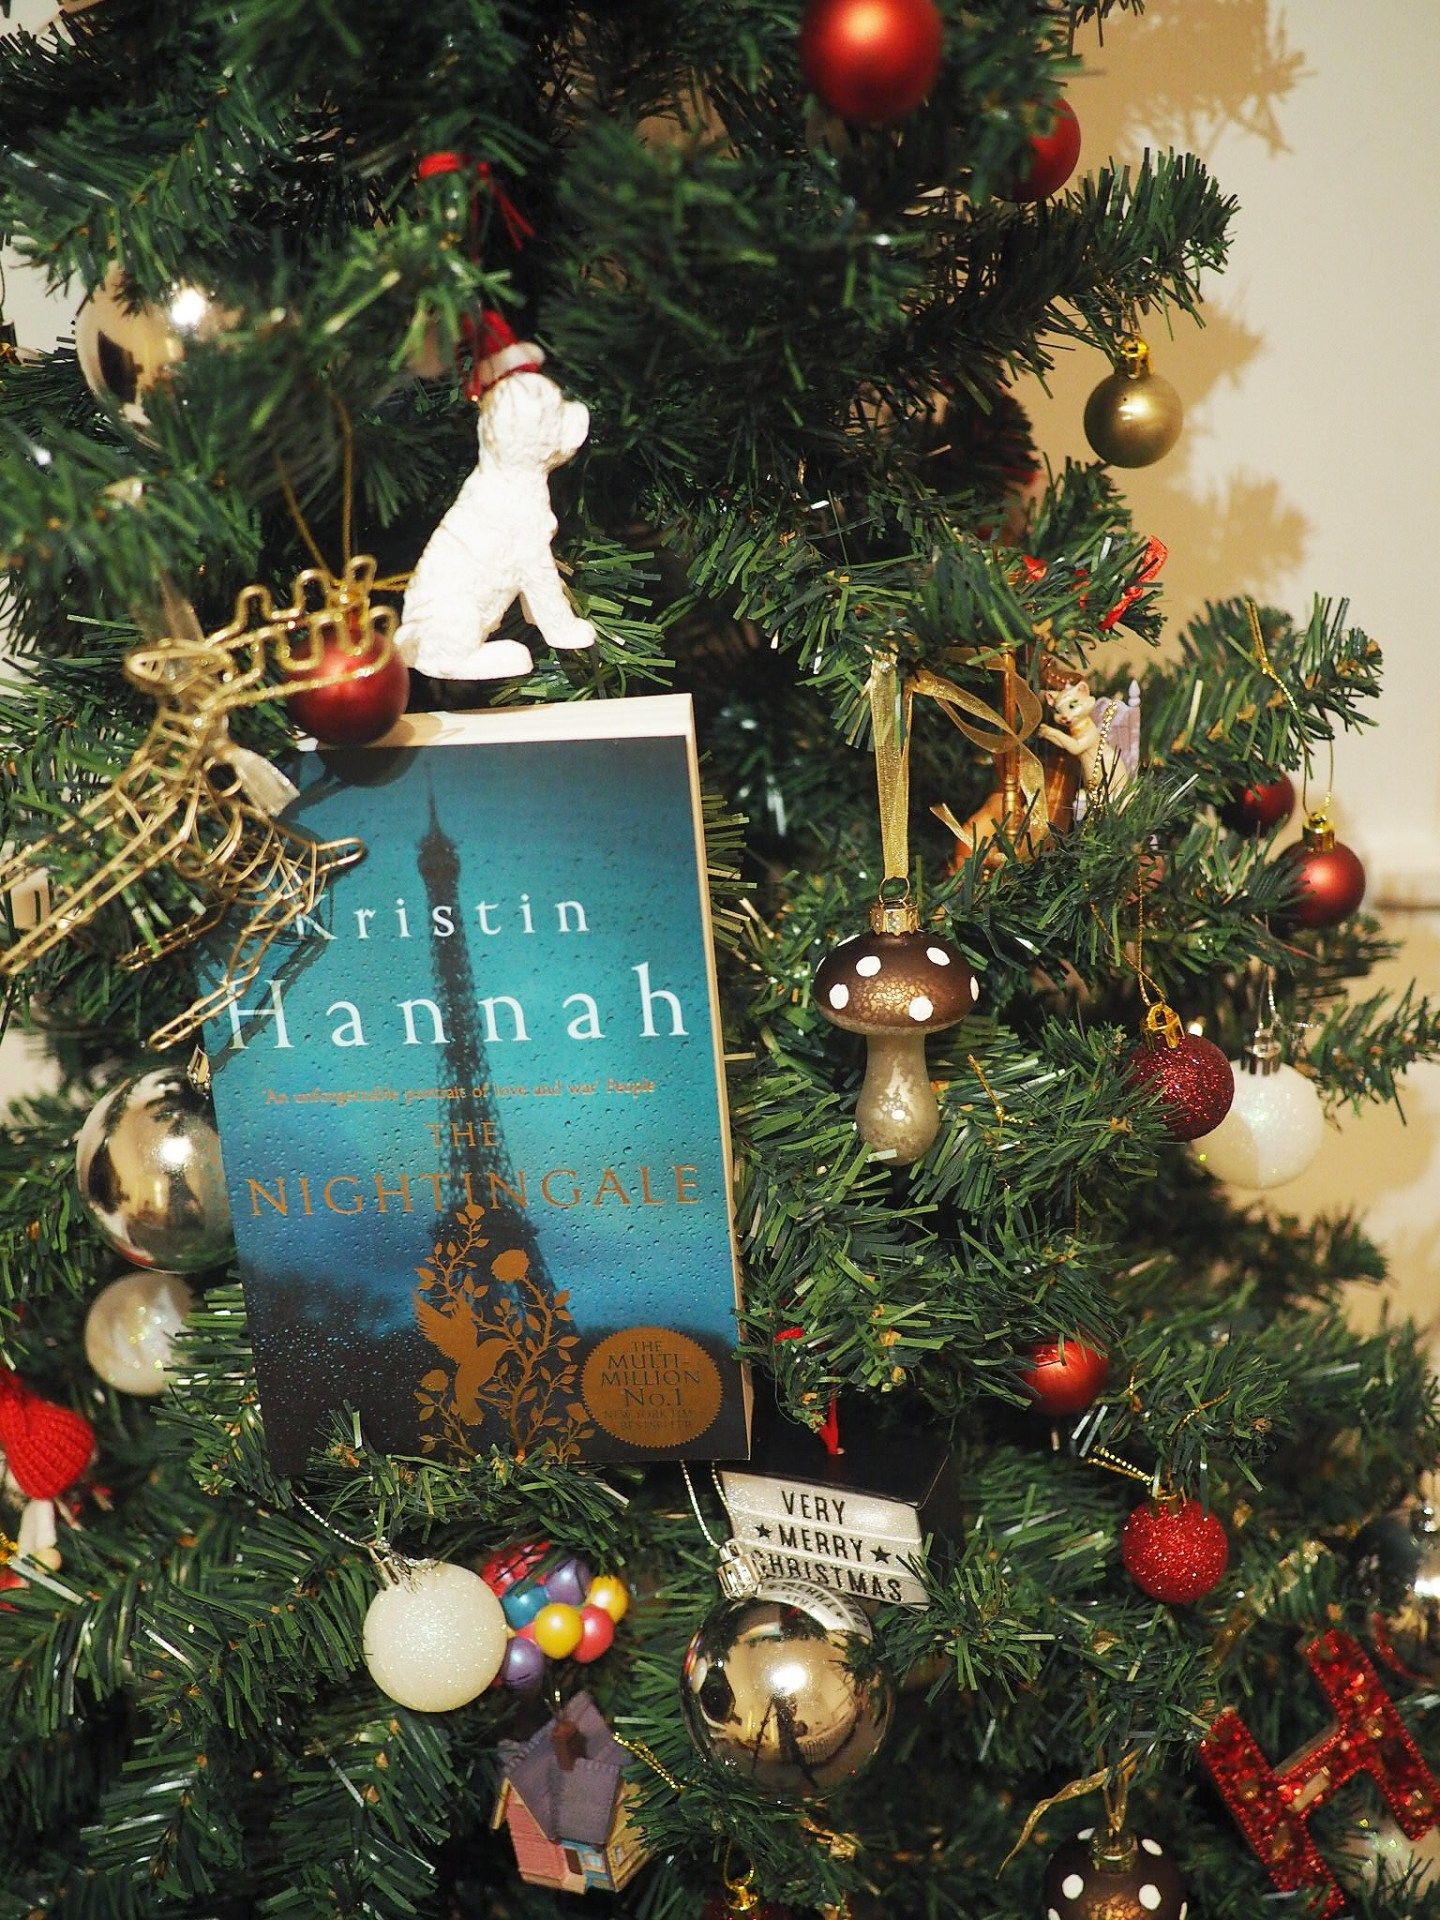 Book Advent Calendar Day 2: The Nightingale by Kristin Hannah